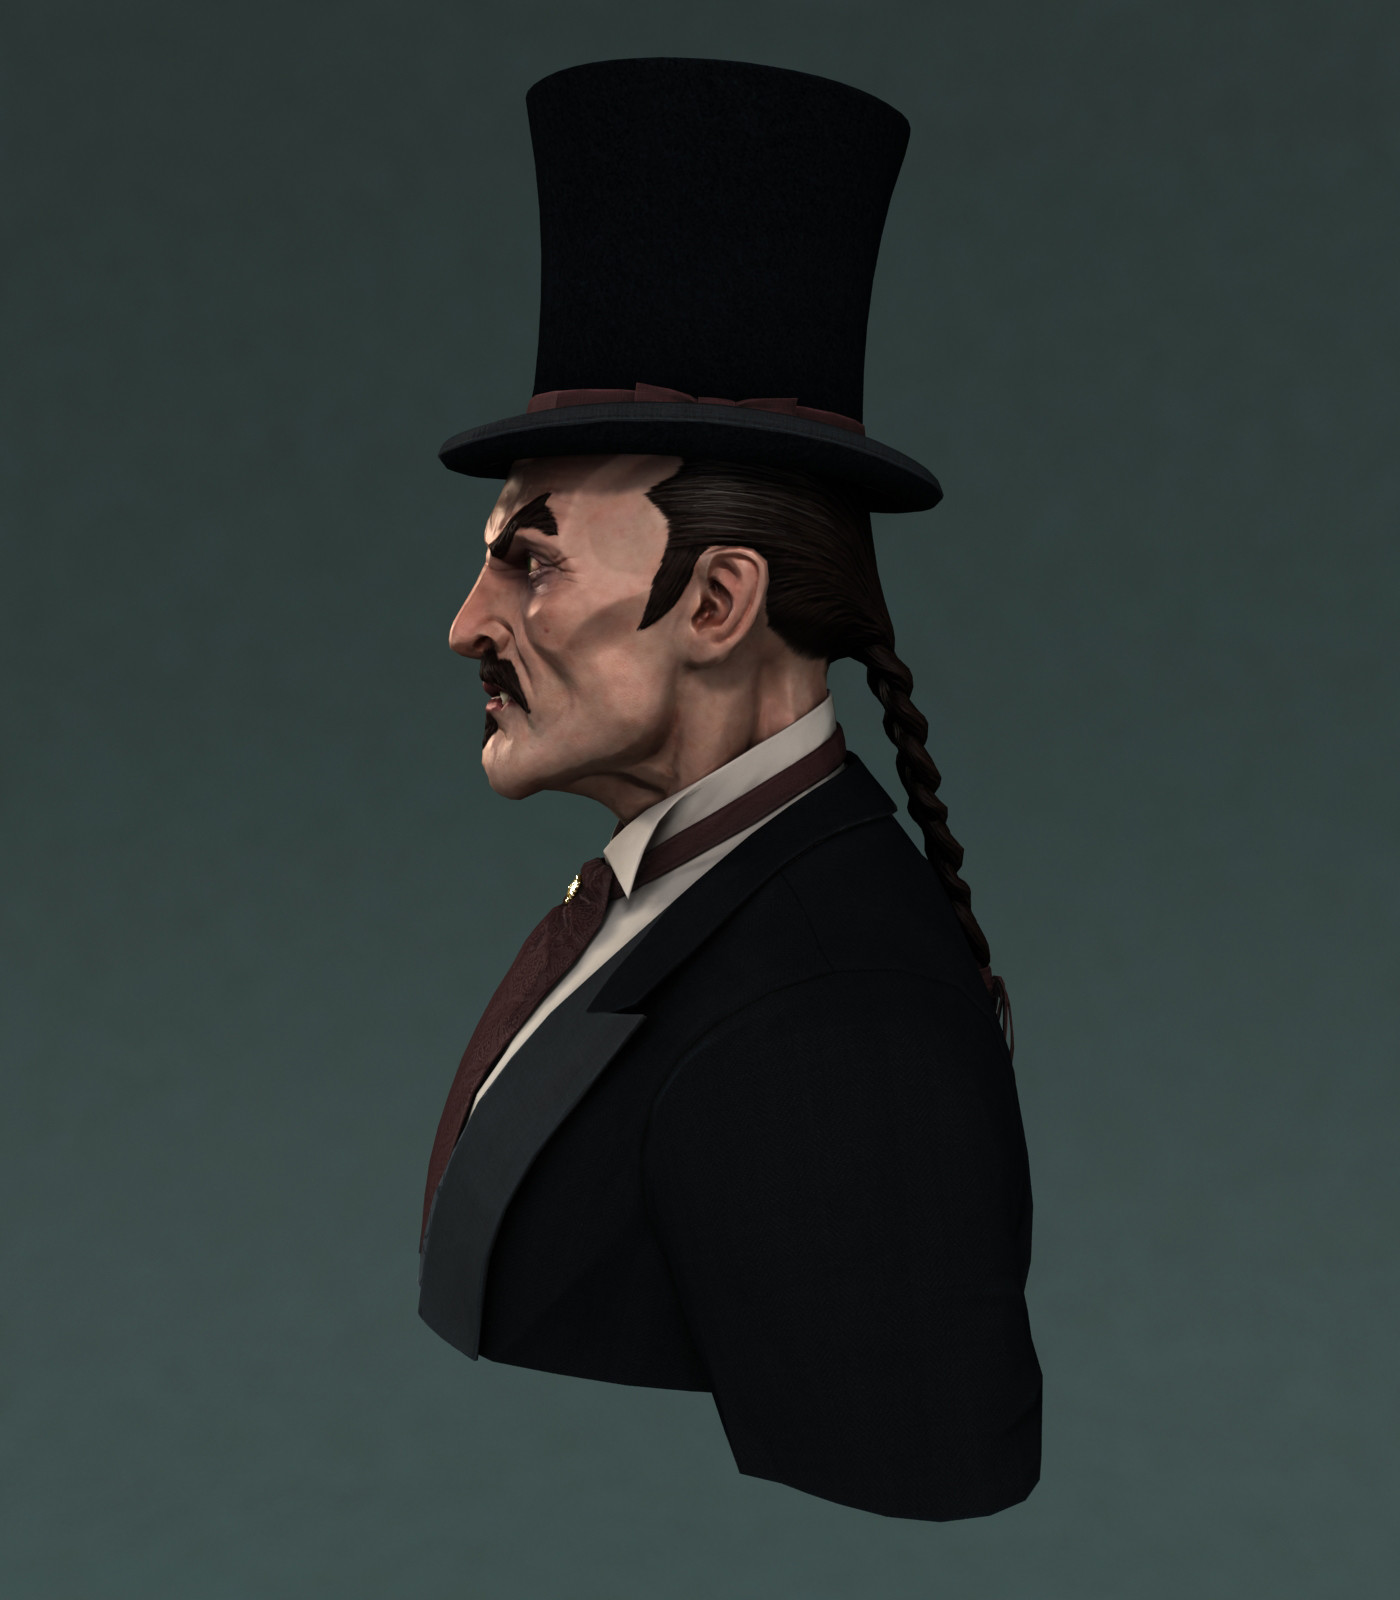 Toby hynes dracula game res 03 web